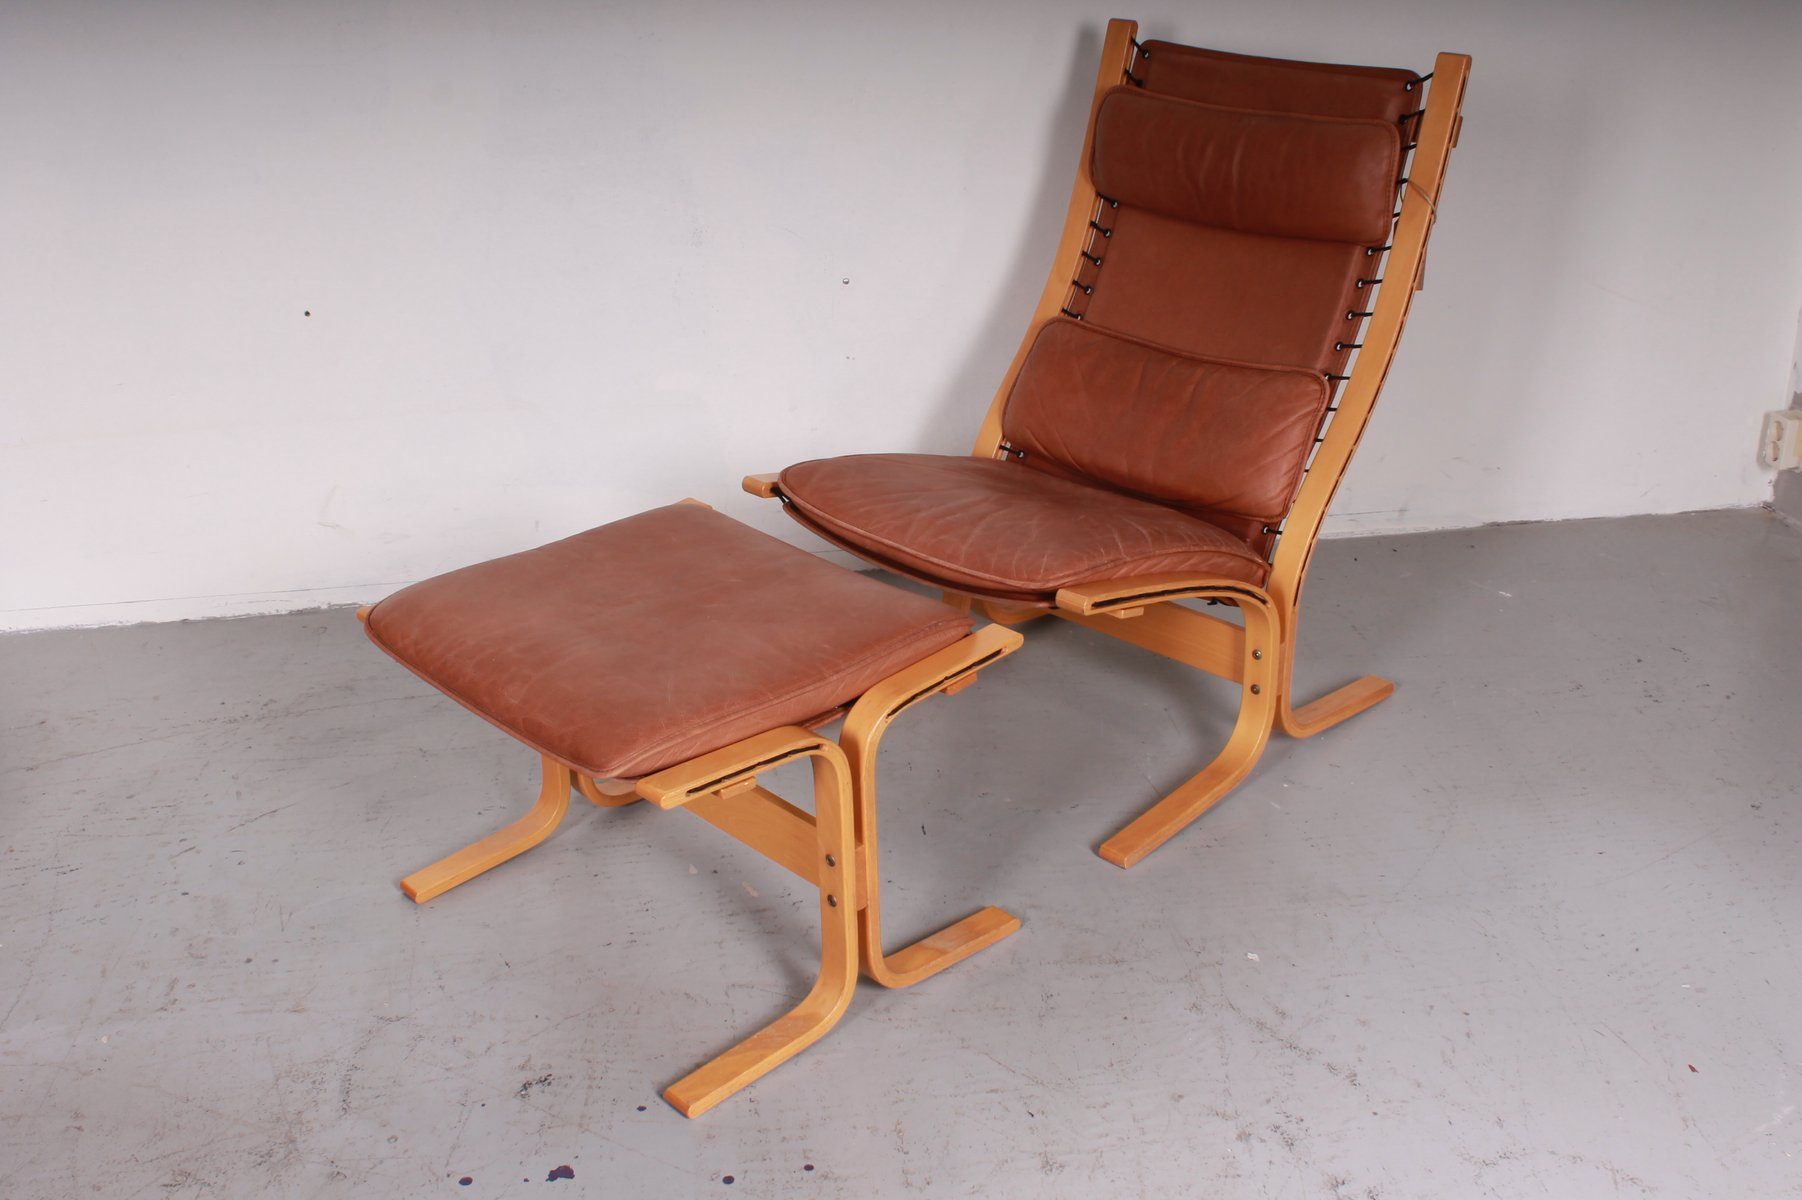 vintage siesta chair with ottoman by ingmar relling for westnofa - Bergroer Sessel Und Ottomane